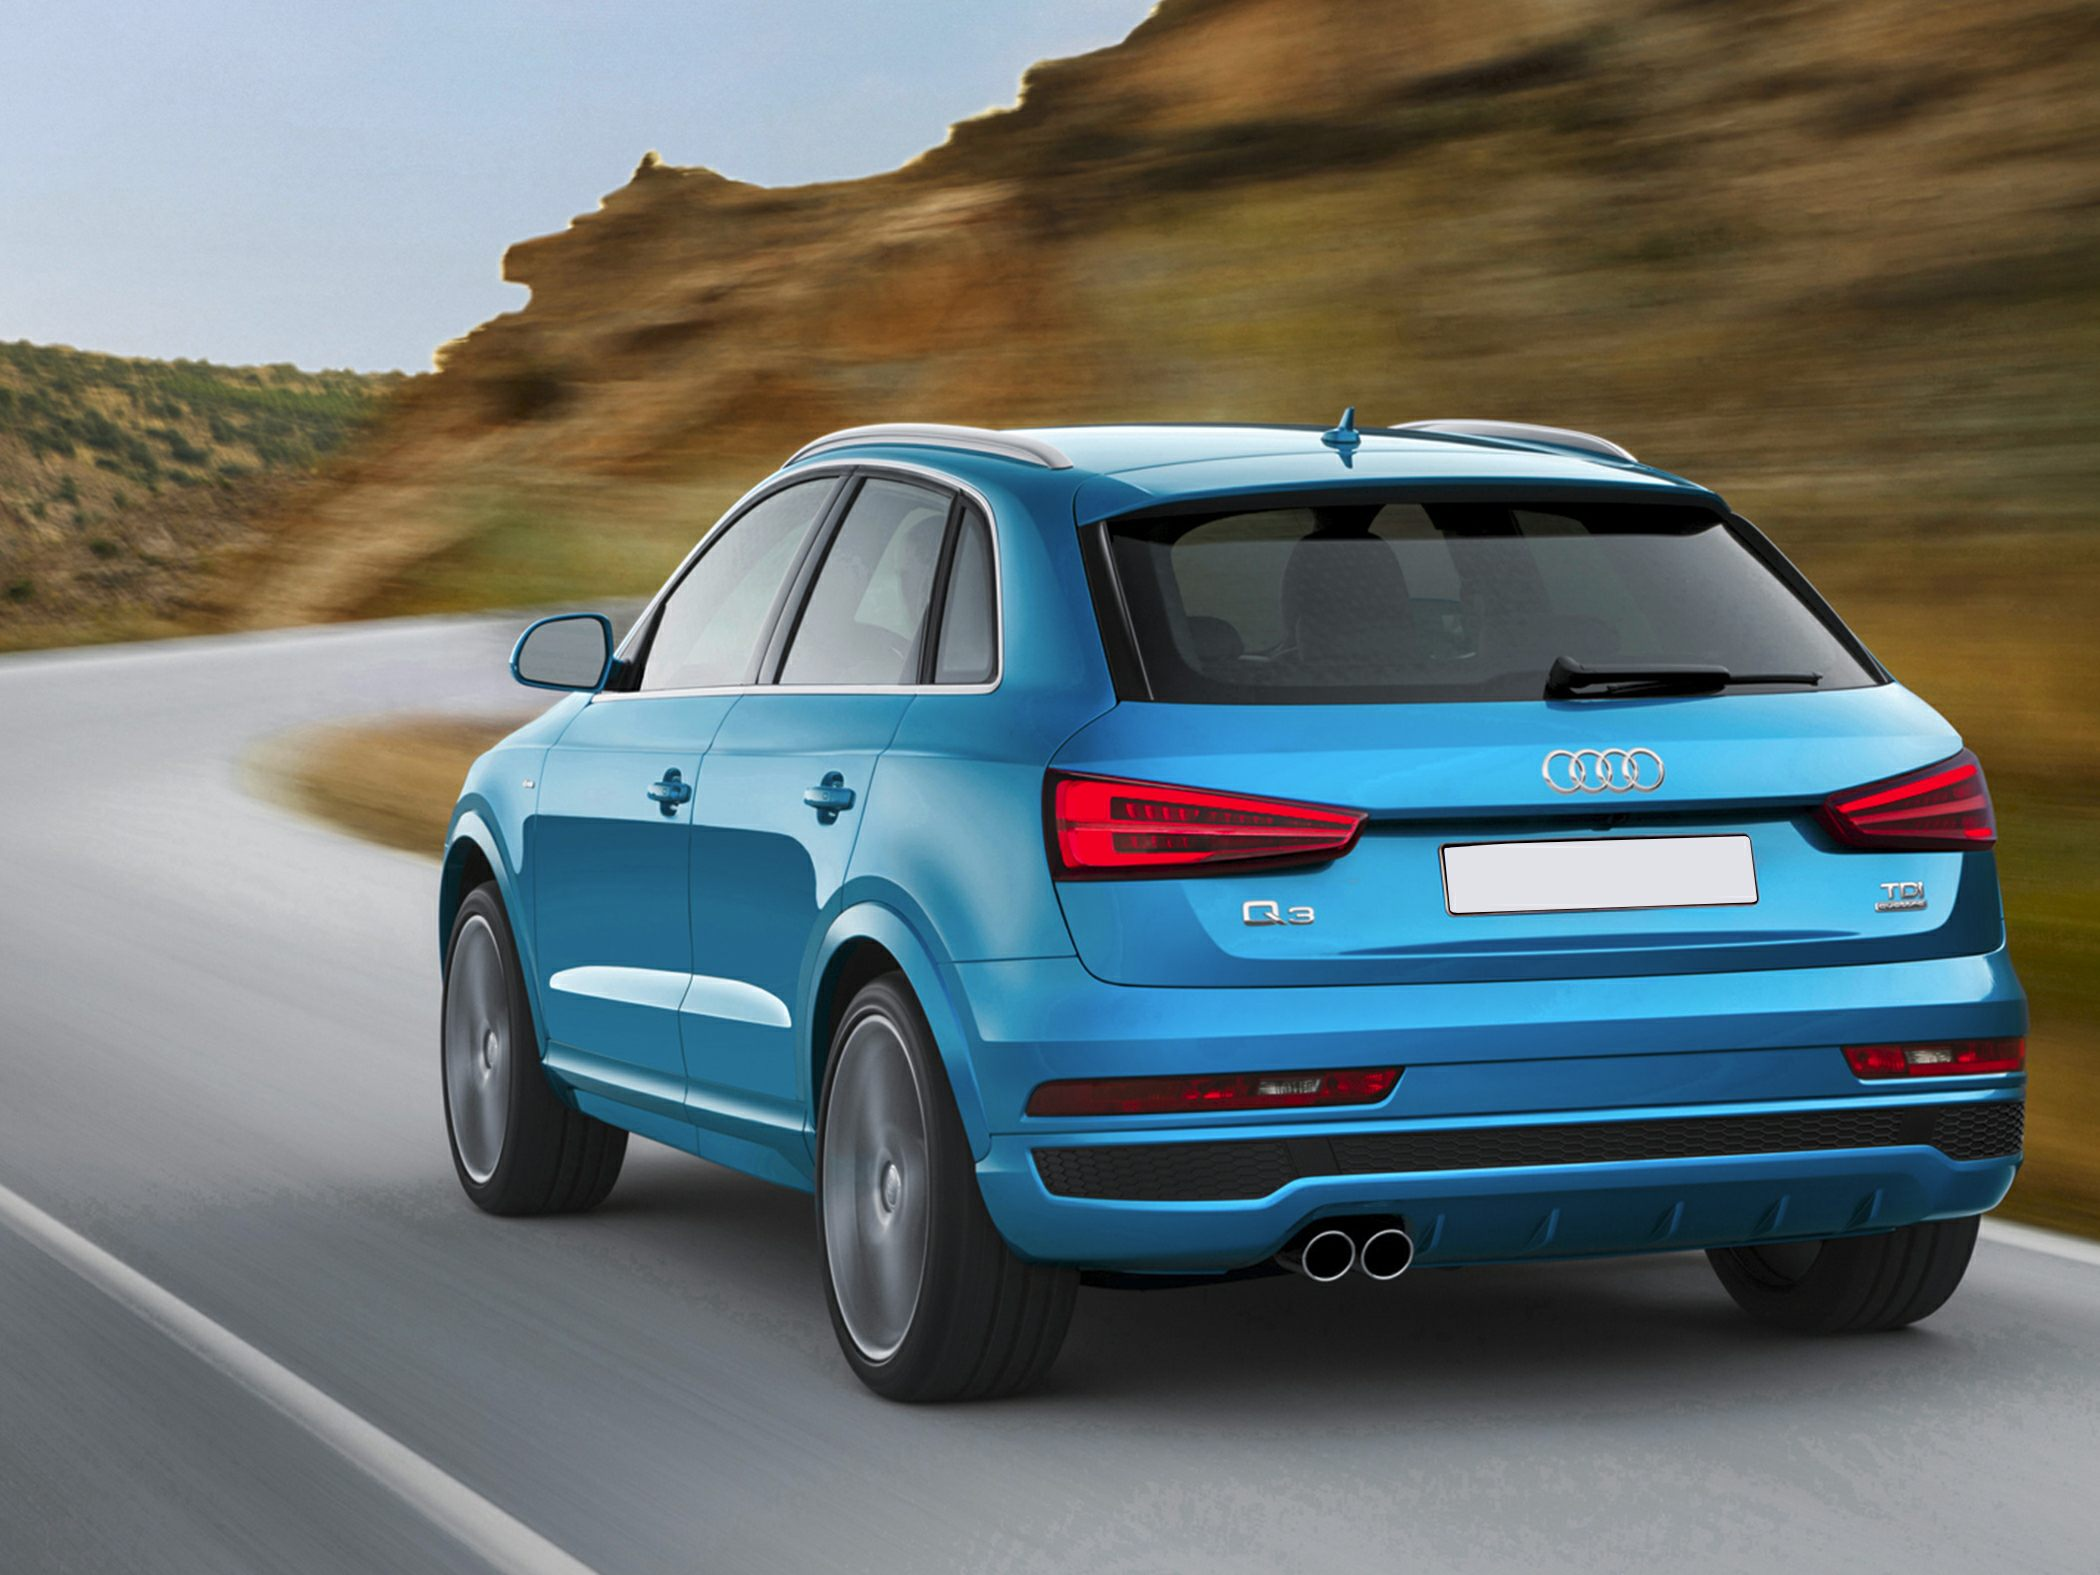 new saloon paris pics audi motor unveiled fast returns door shows four leasing magazine car events audis news and by details s